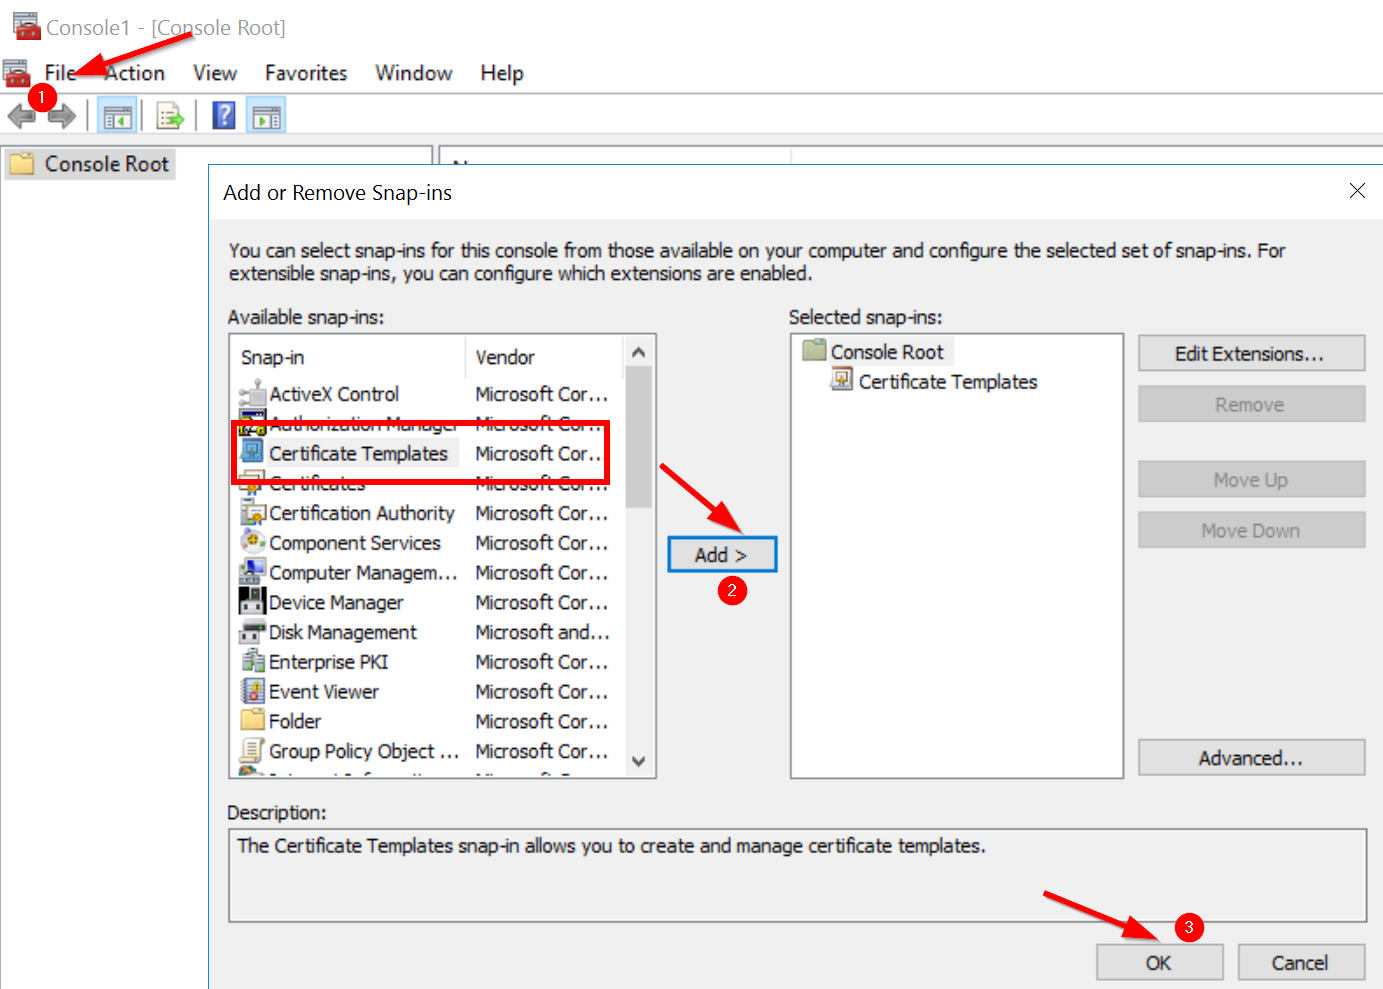 MMC_Add_Cert_Templates.png